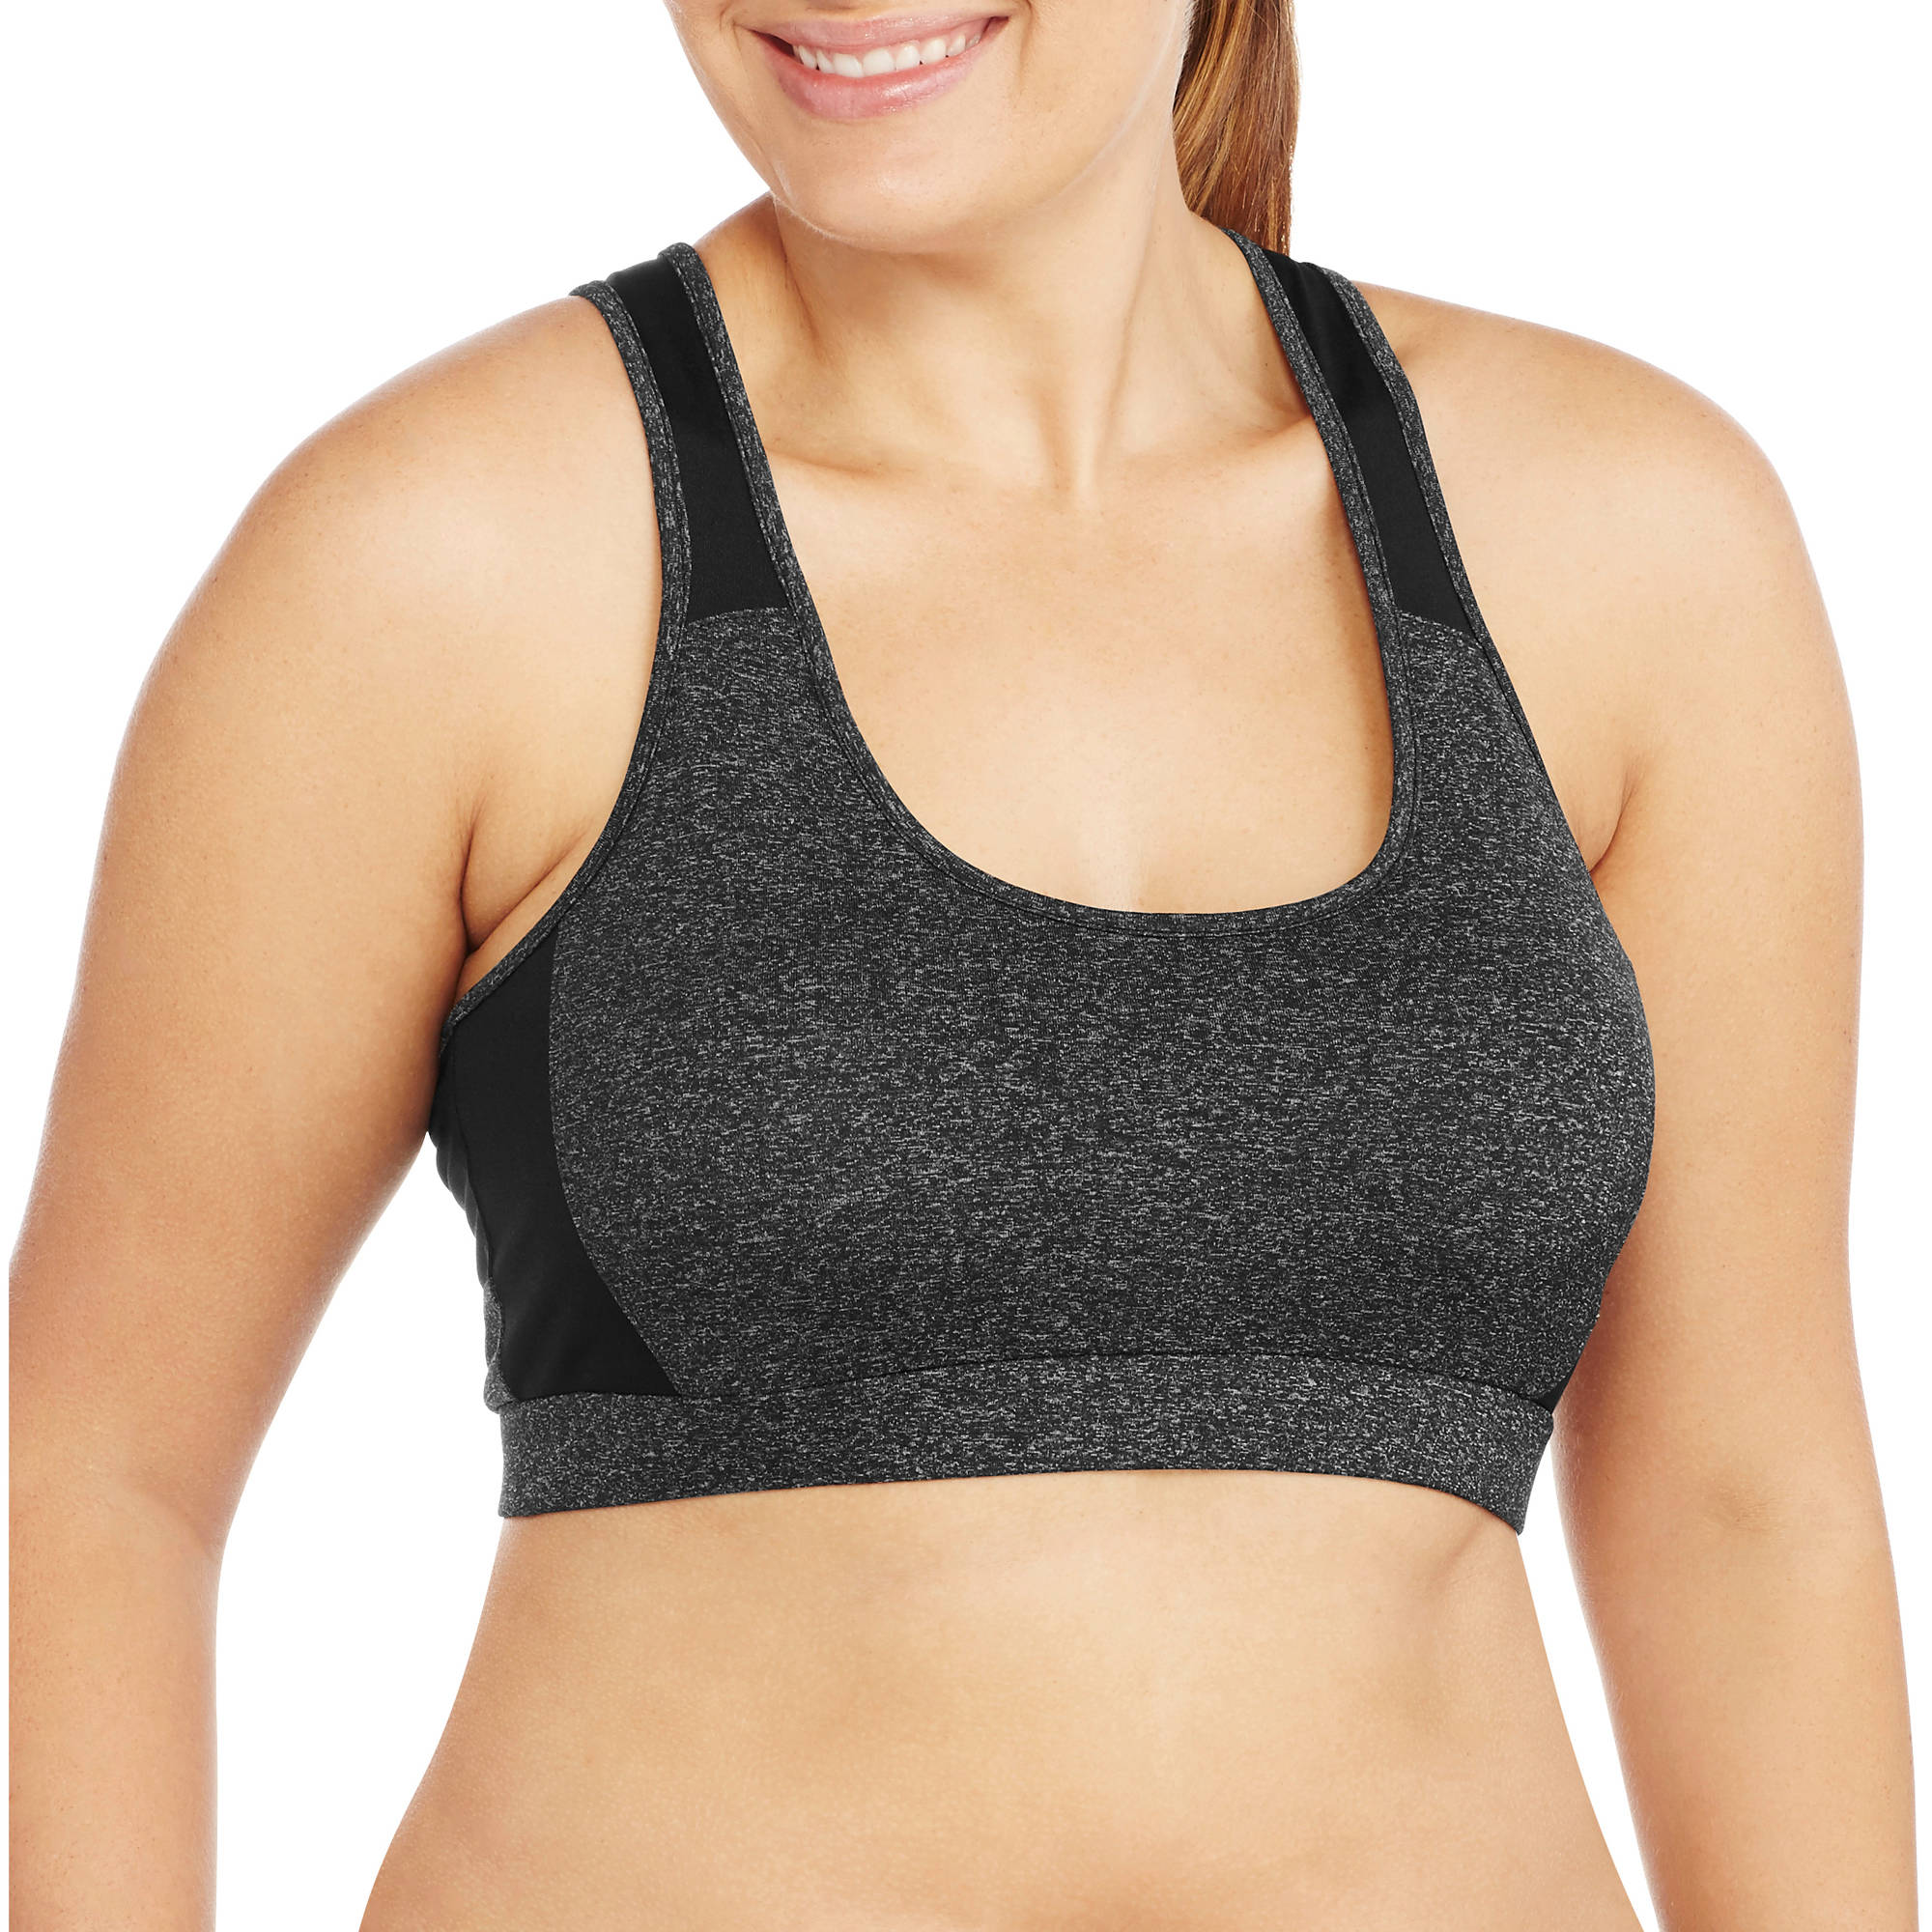 Women's Plus-Size  Sports Bra With Reflective